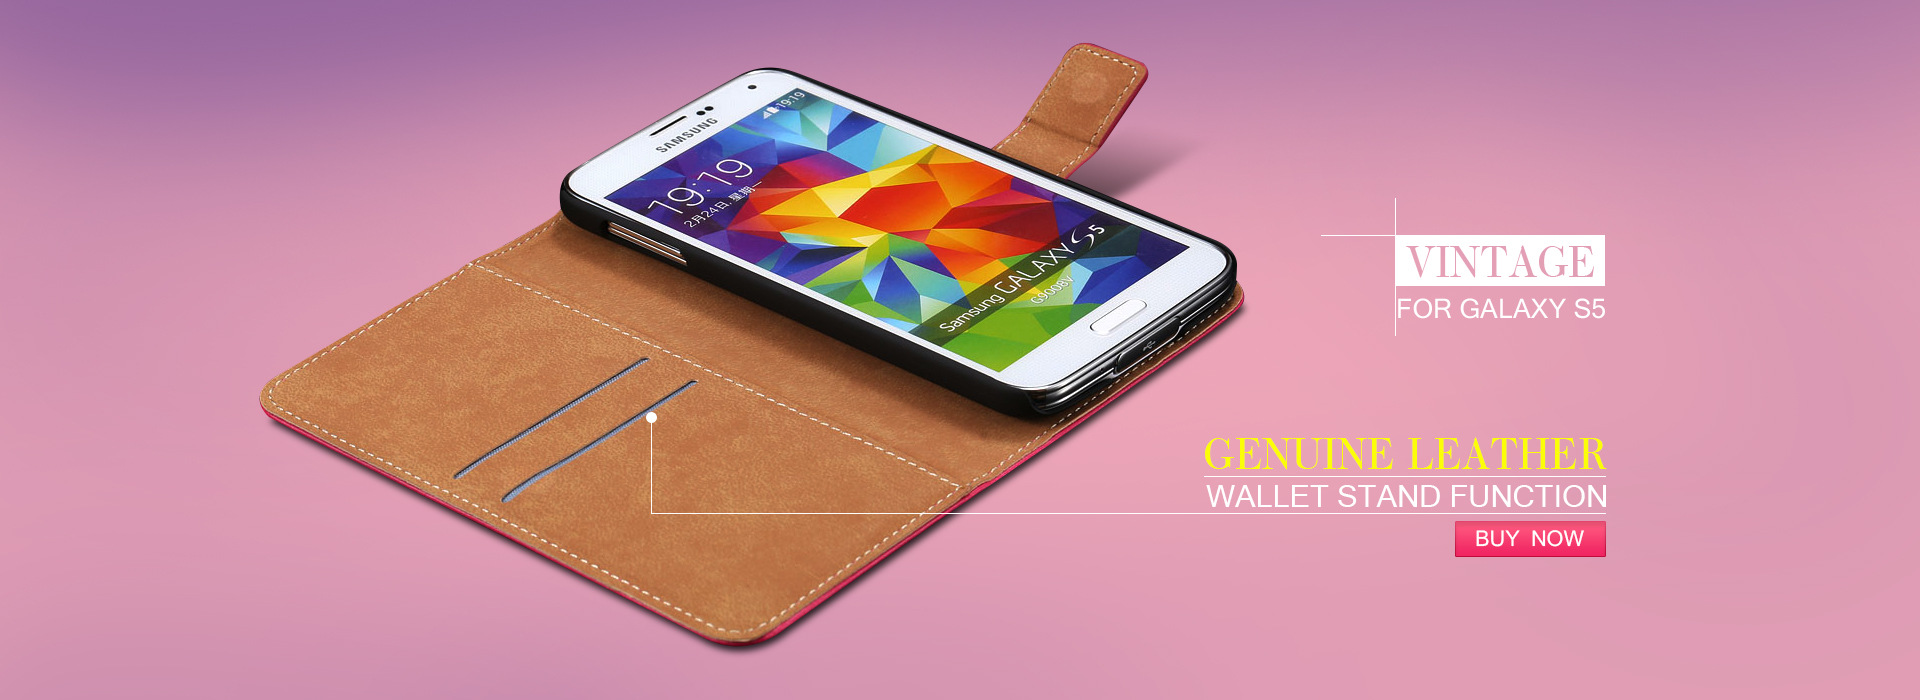 Samsung S5 Leather Case